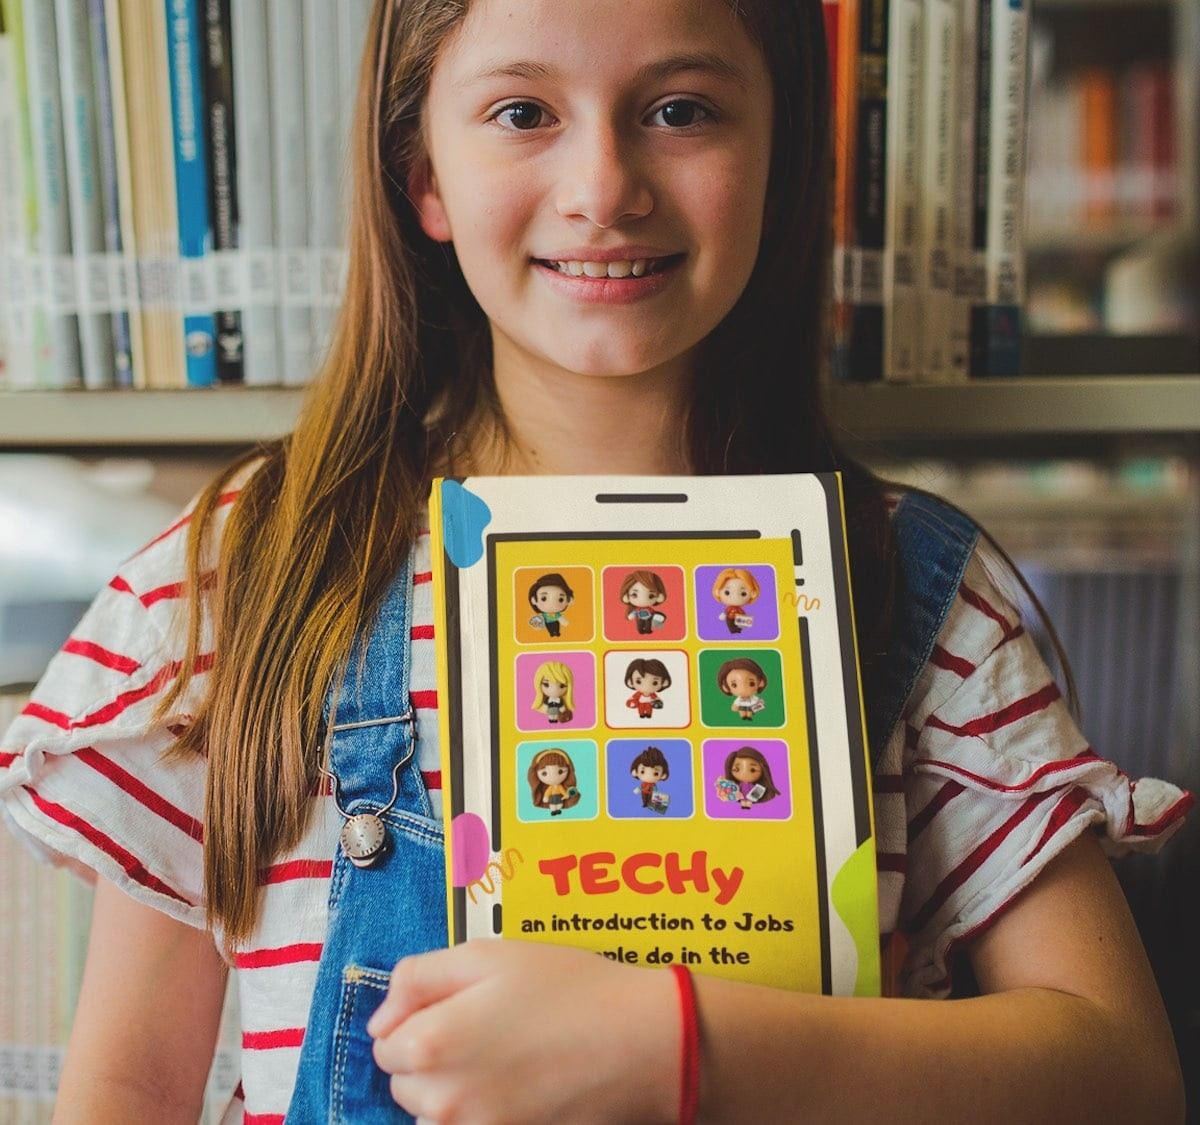 TECHy children's book displays pictures of different tech jobs